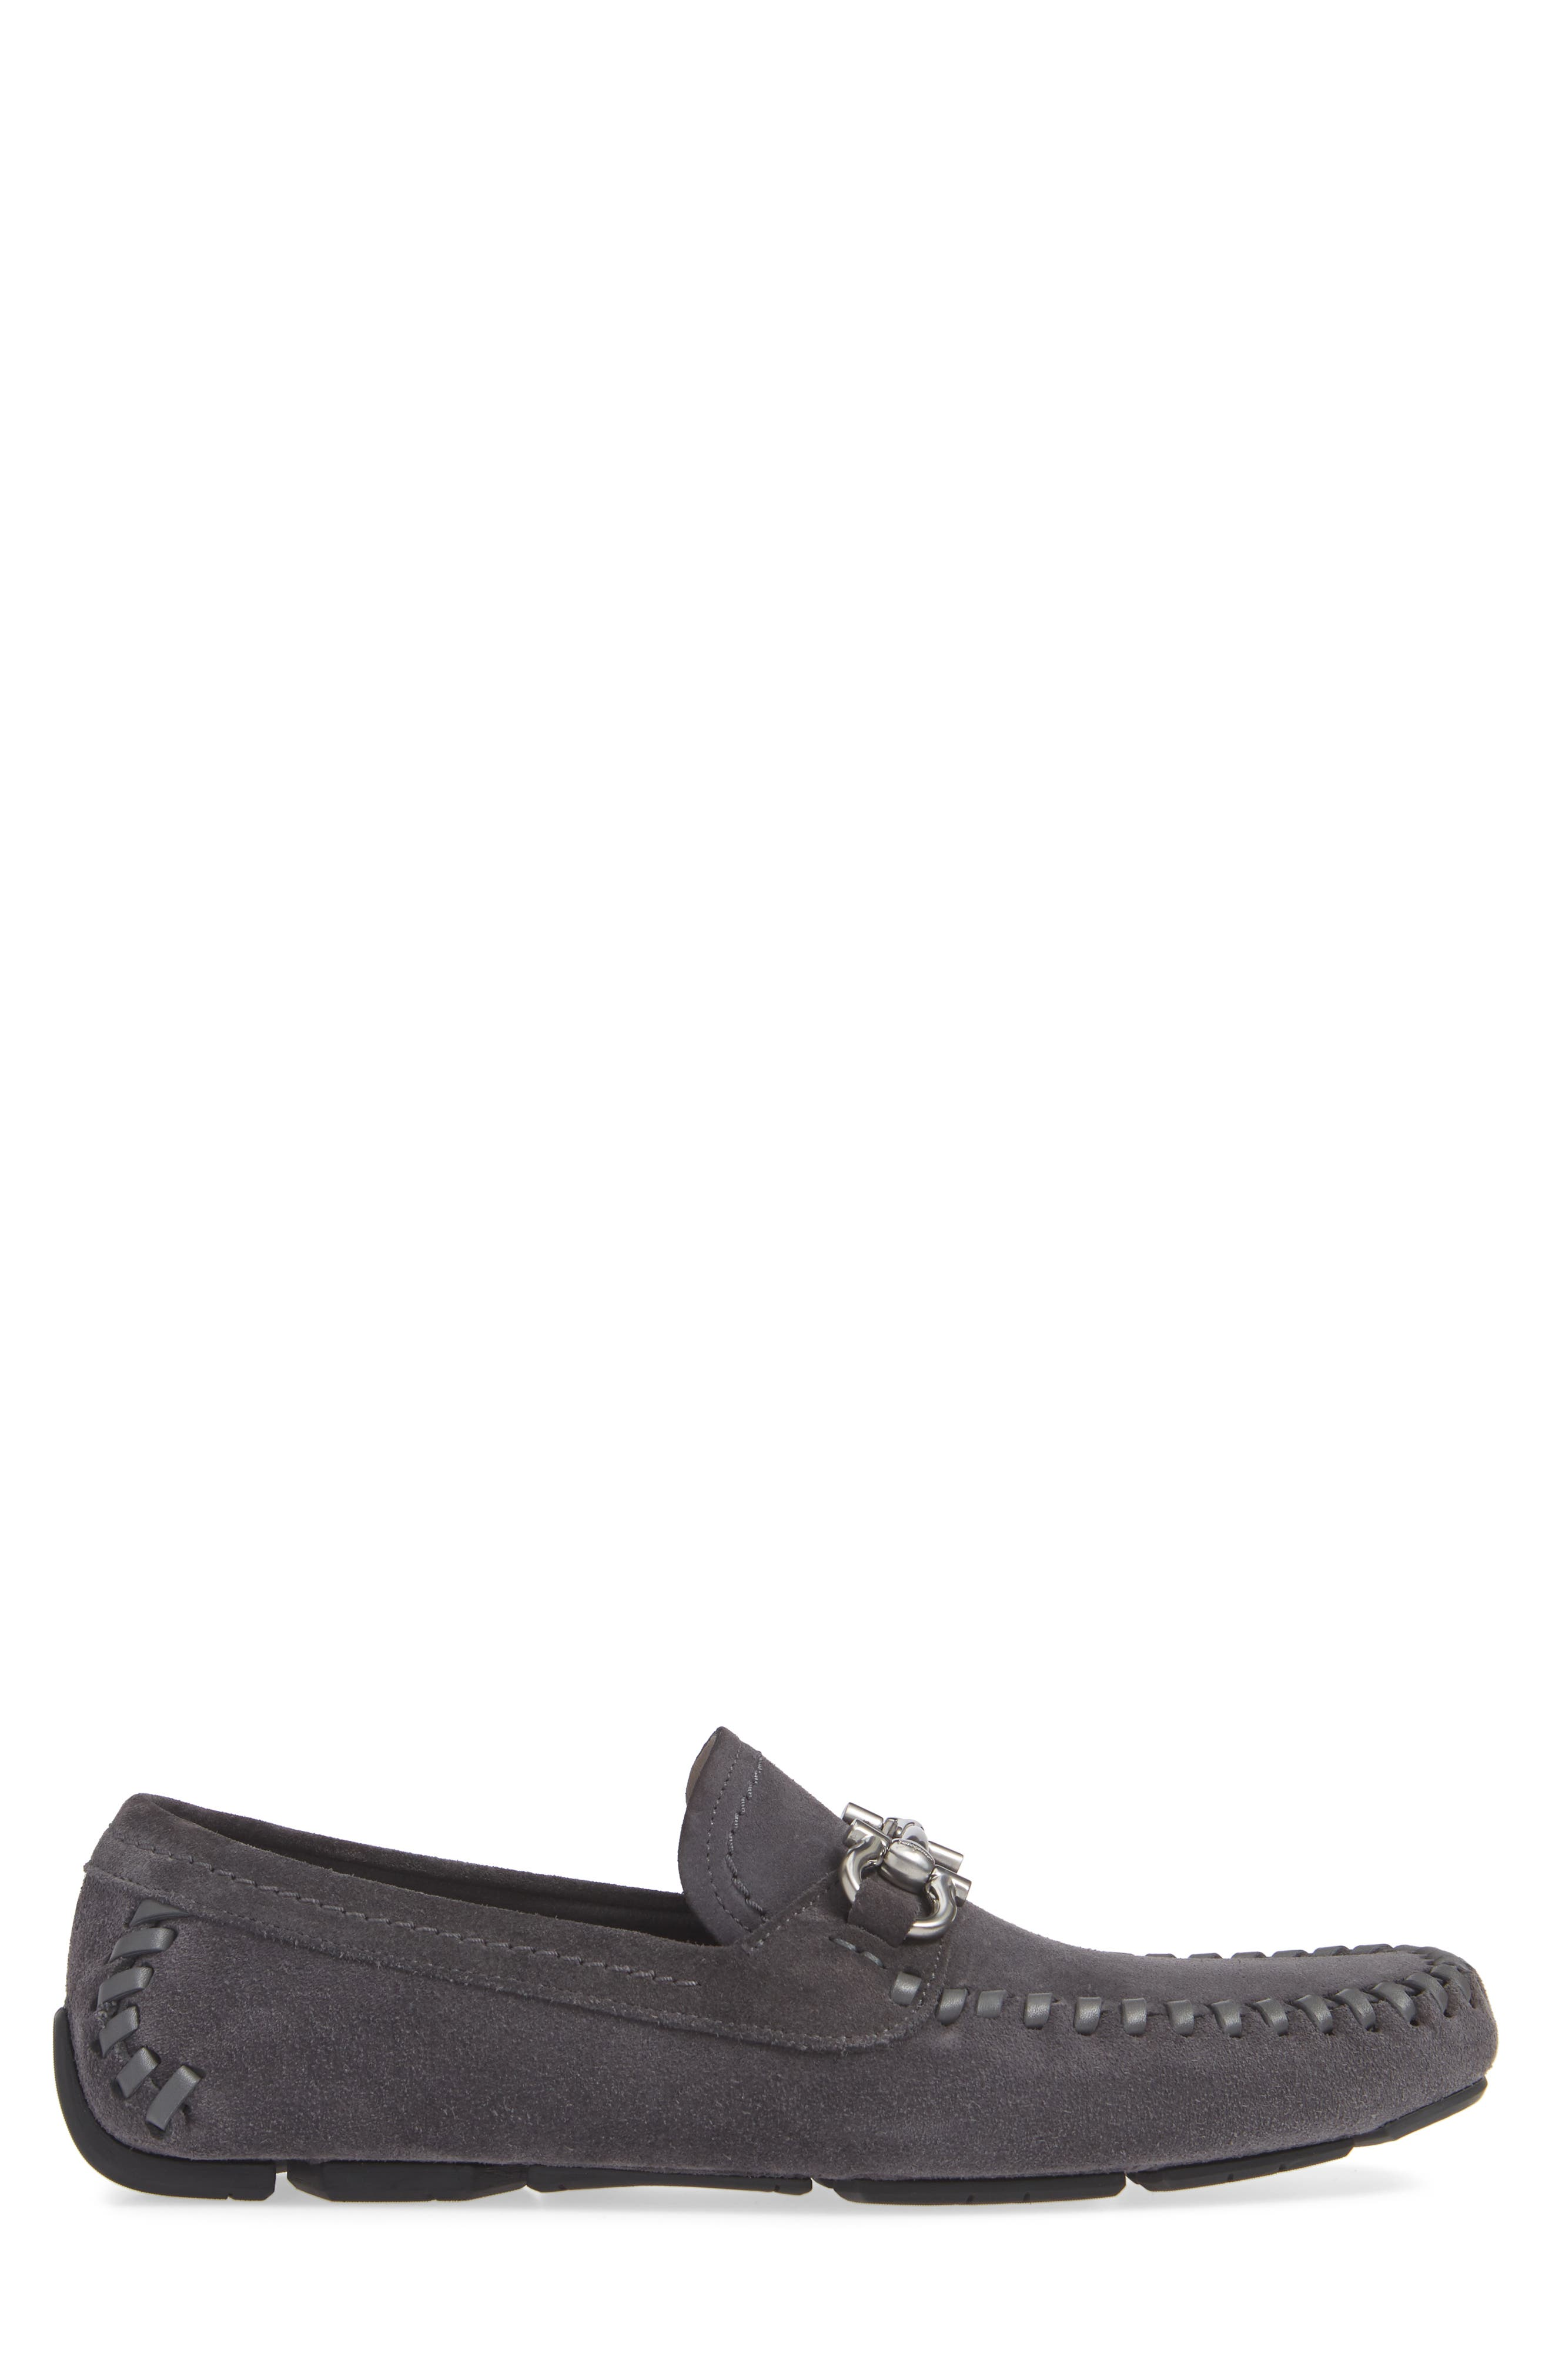 SALVATORE FERRAGAMO, Parigi Bit Driving Moccasin, Alternate thumbnail 3, color, ASFALTO NERO